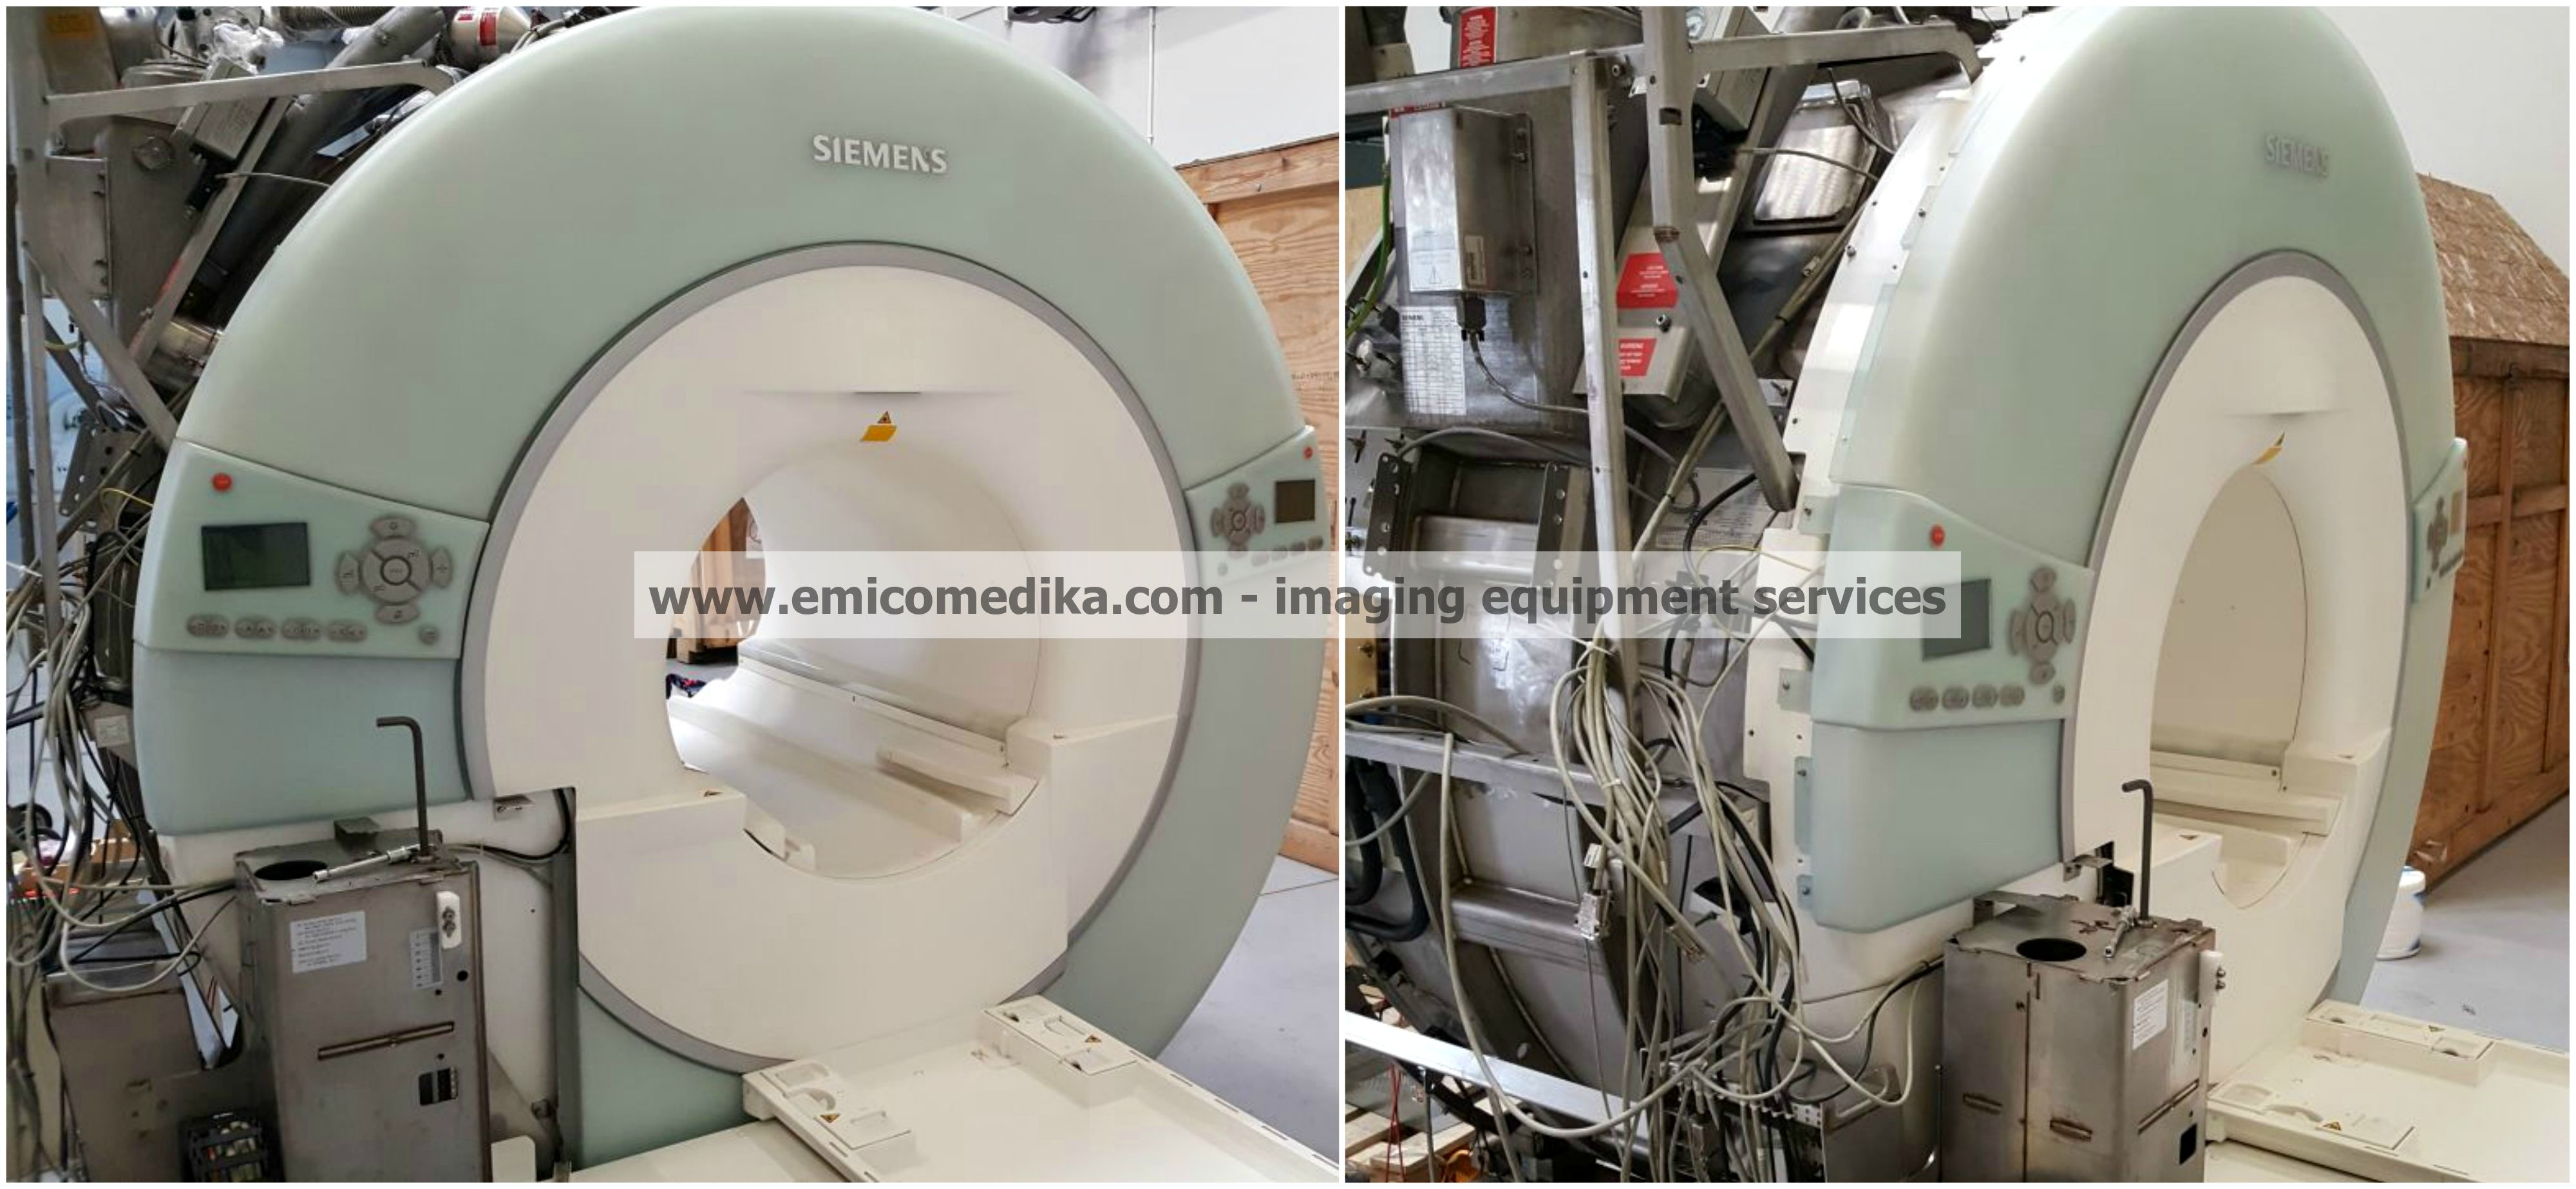 Our staff offers full MRI cooling system troubleshooting and repair